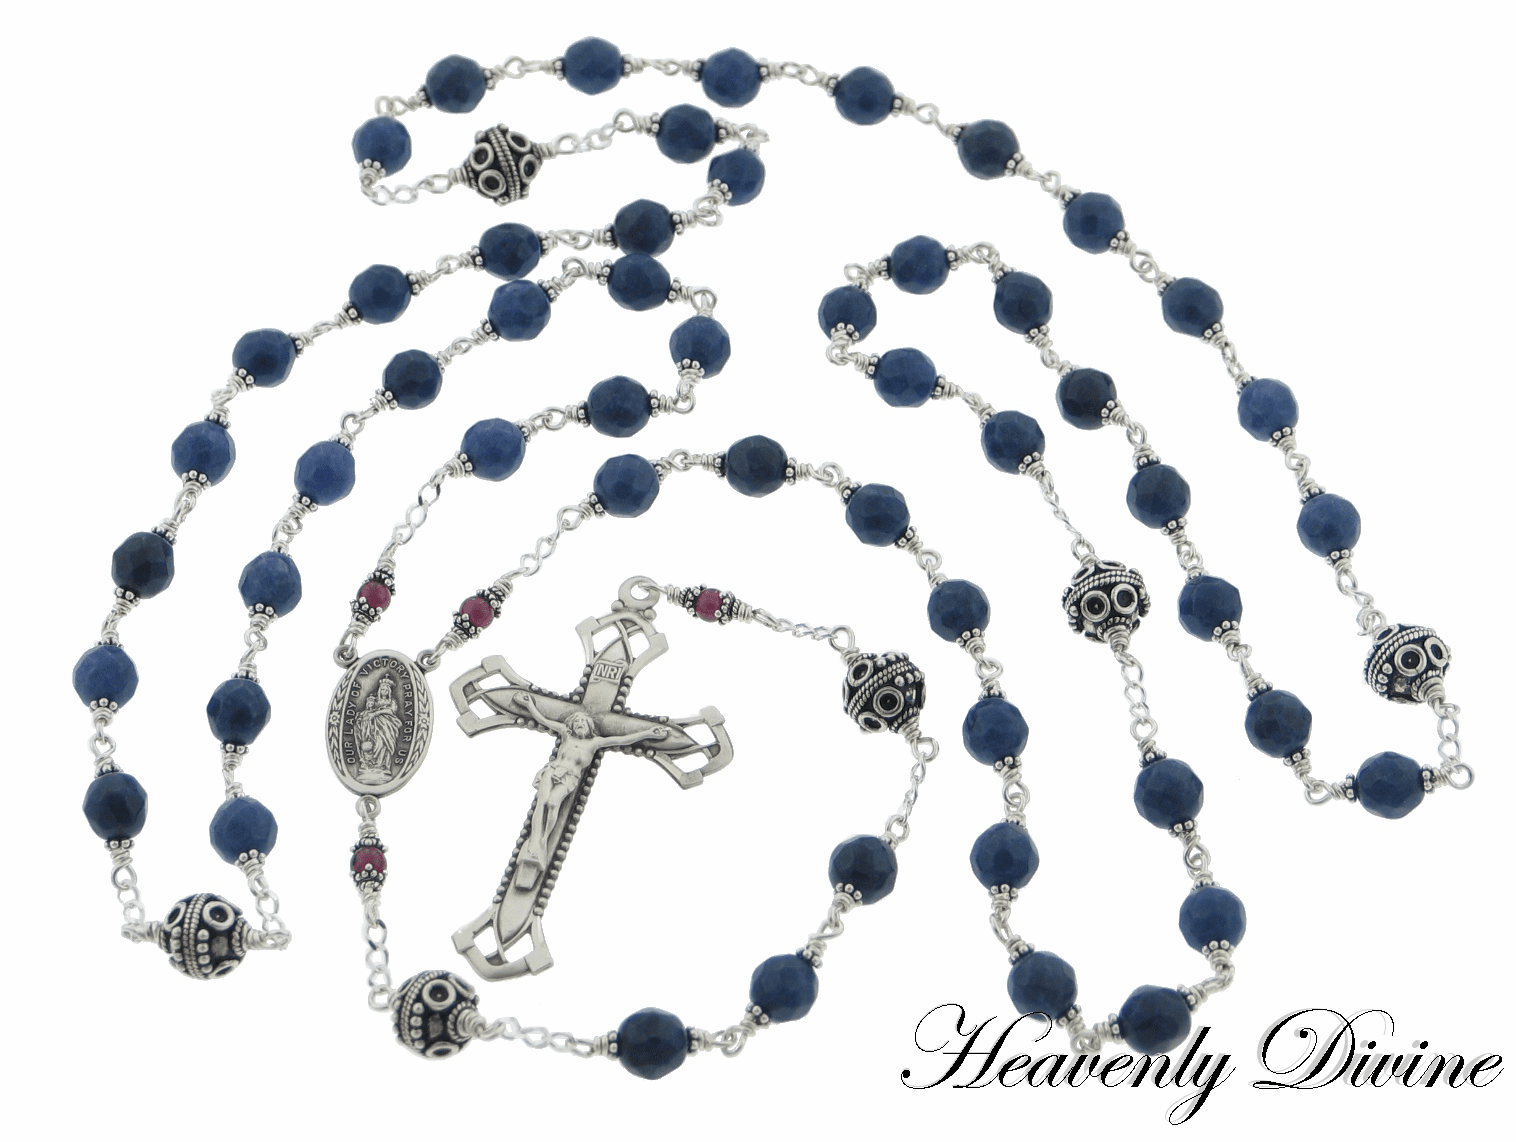 Heavenly Divine Custom Rosary and Chaplet Section